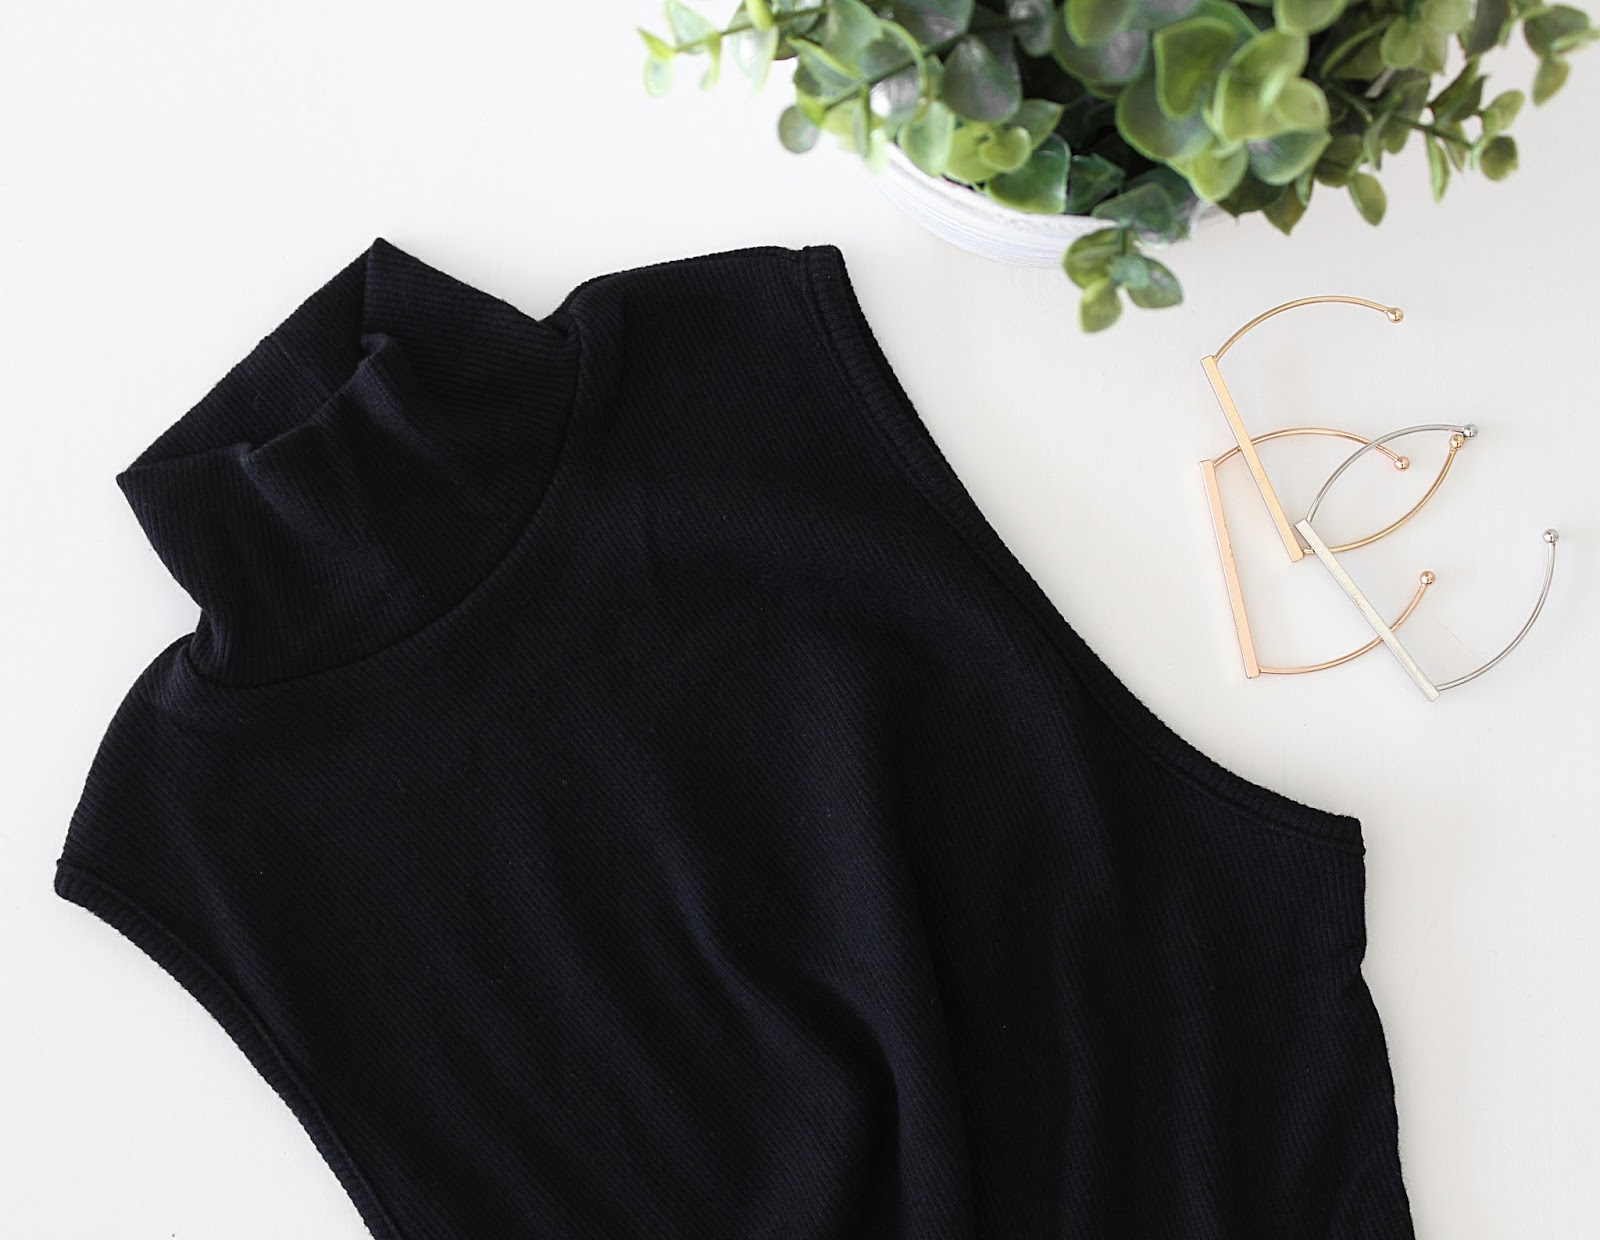 ASOS Haul - ASOS Turtle Neck Ribbed Body in Black